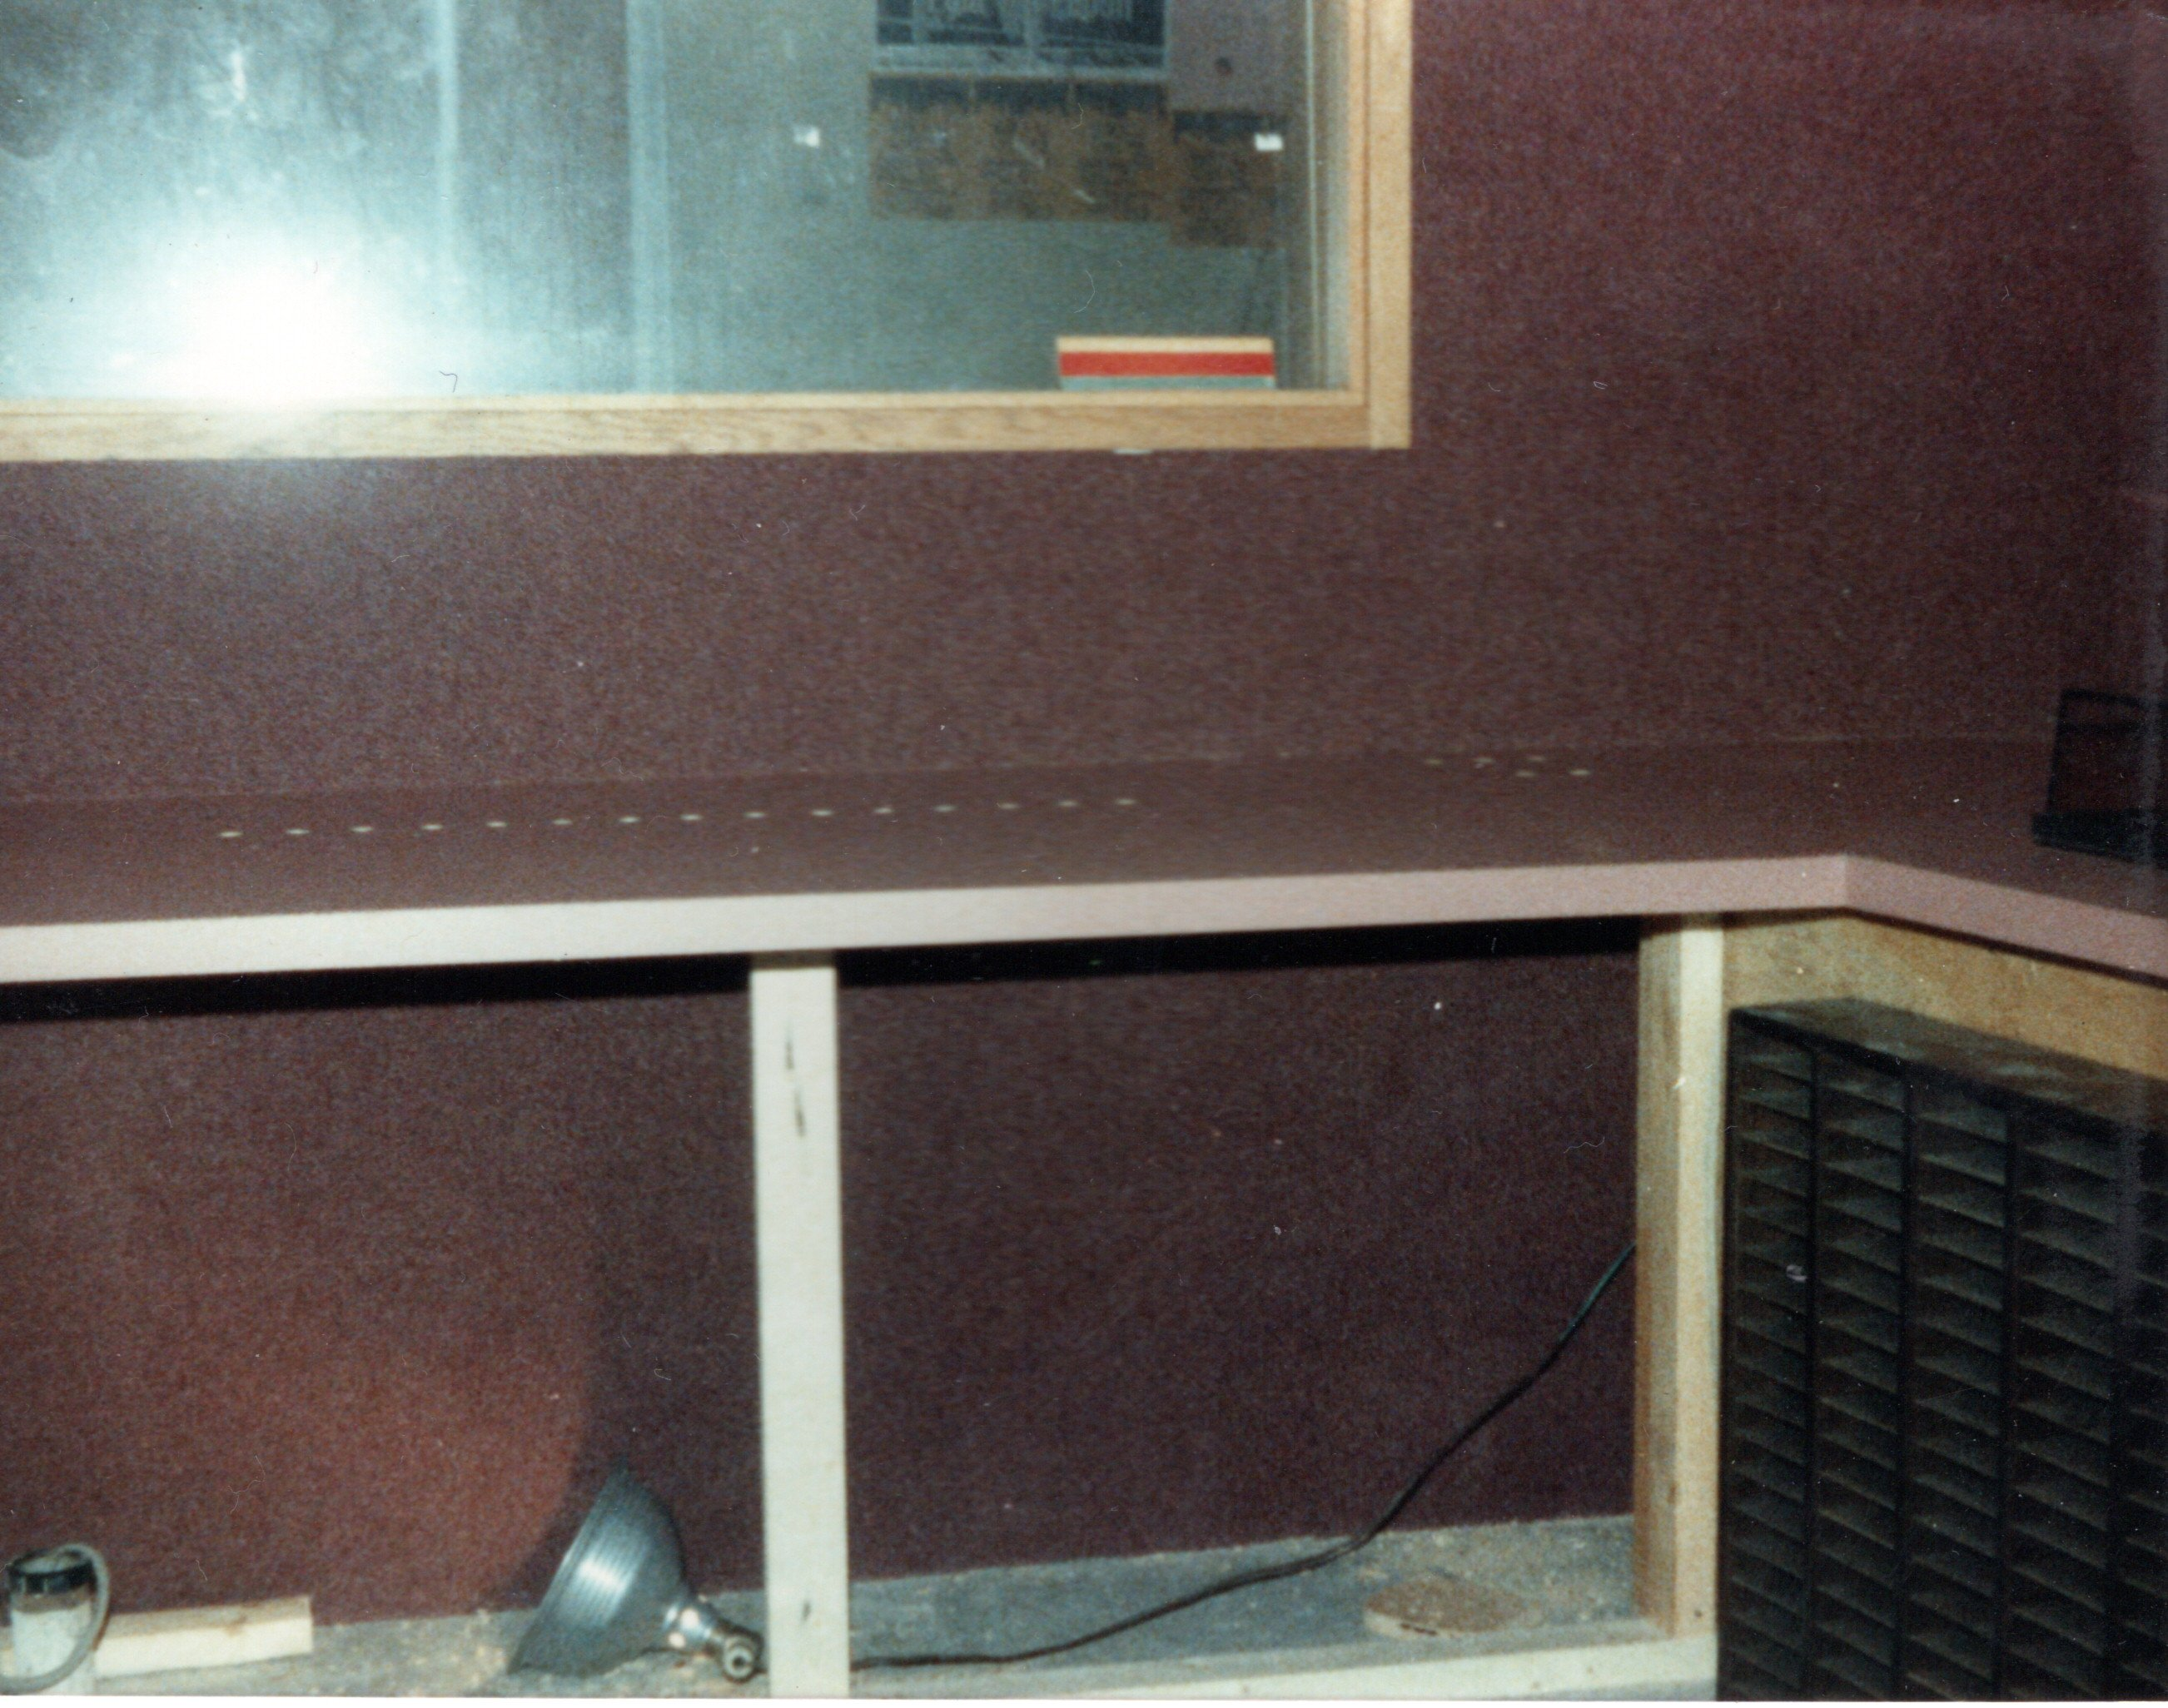 1985-Production Rebuild - With the wall Covering in place and the cabinets coming along.